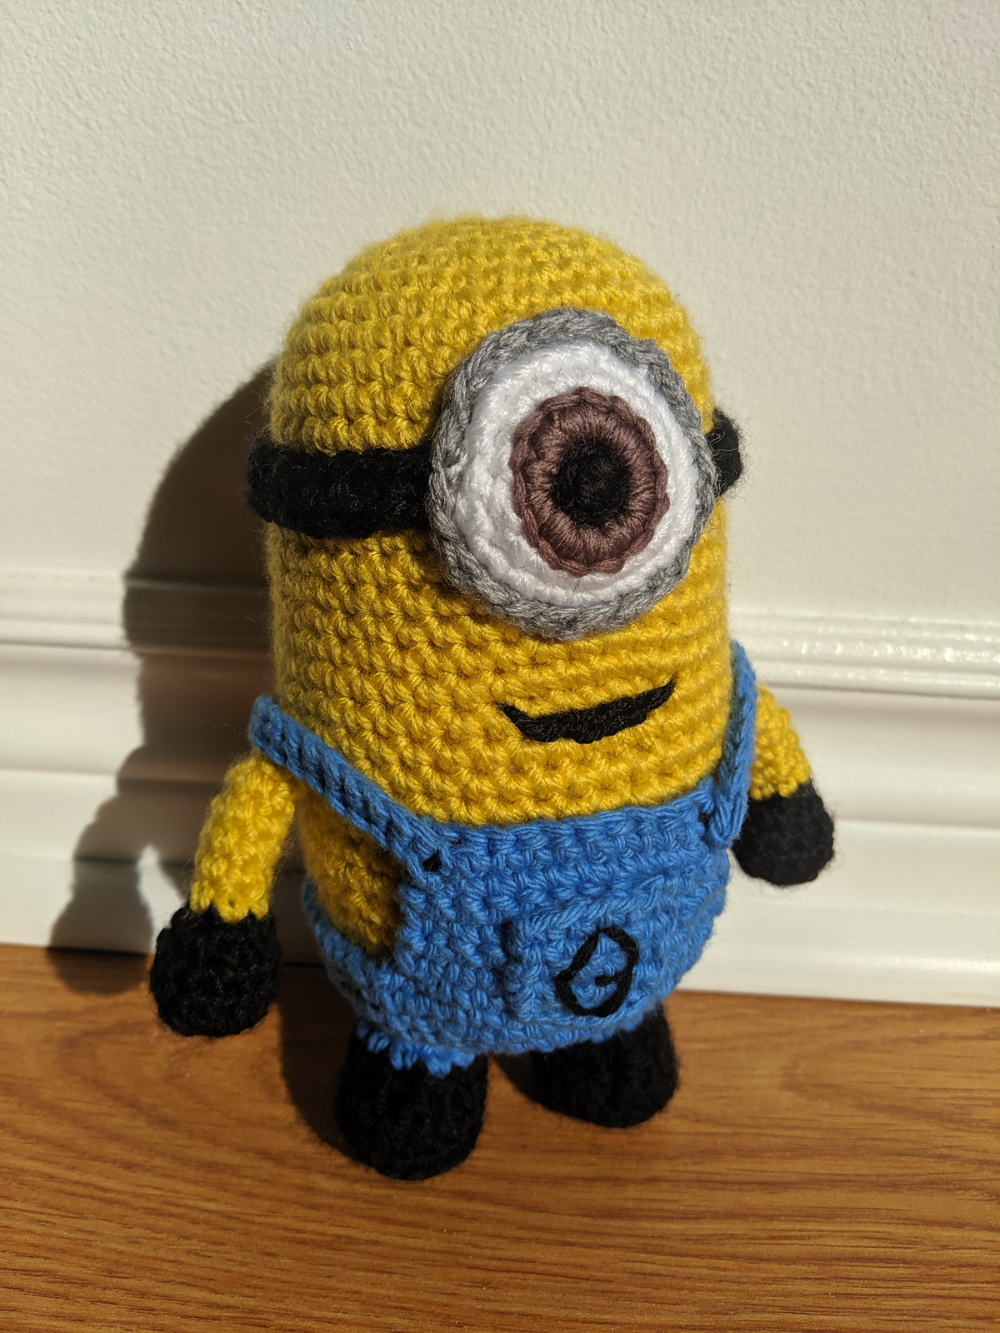 Minion By Cow From Mars - Free Crochet Pattern - (ravelry) #minioncrochetpatterns Minion By Cow From Mars - Free Crochet Pattern - (ravelry) #minioncrochetpatterns